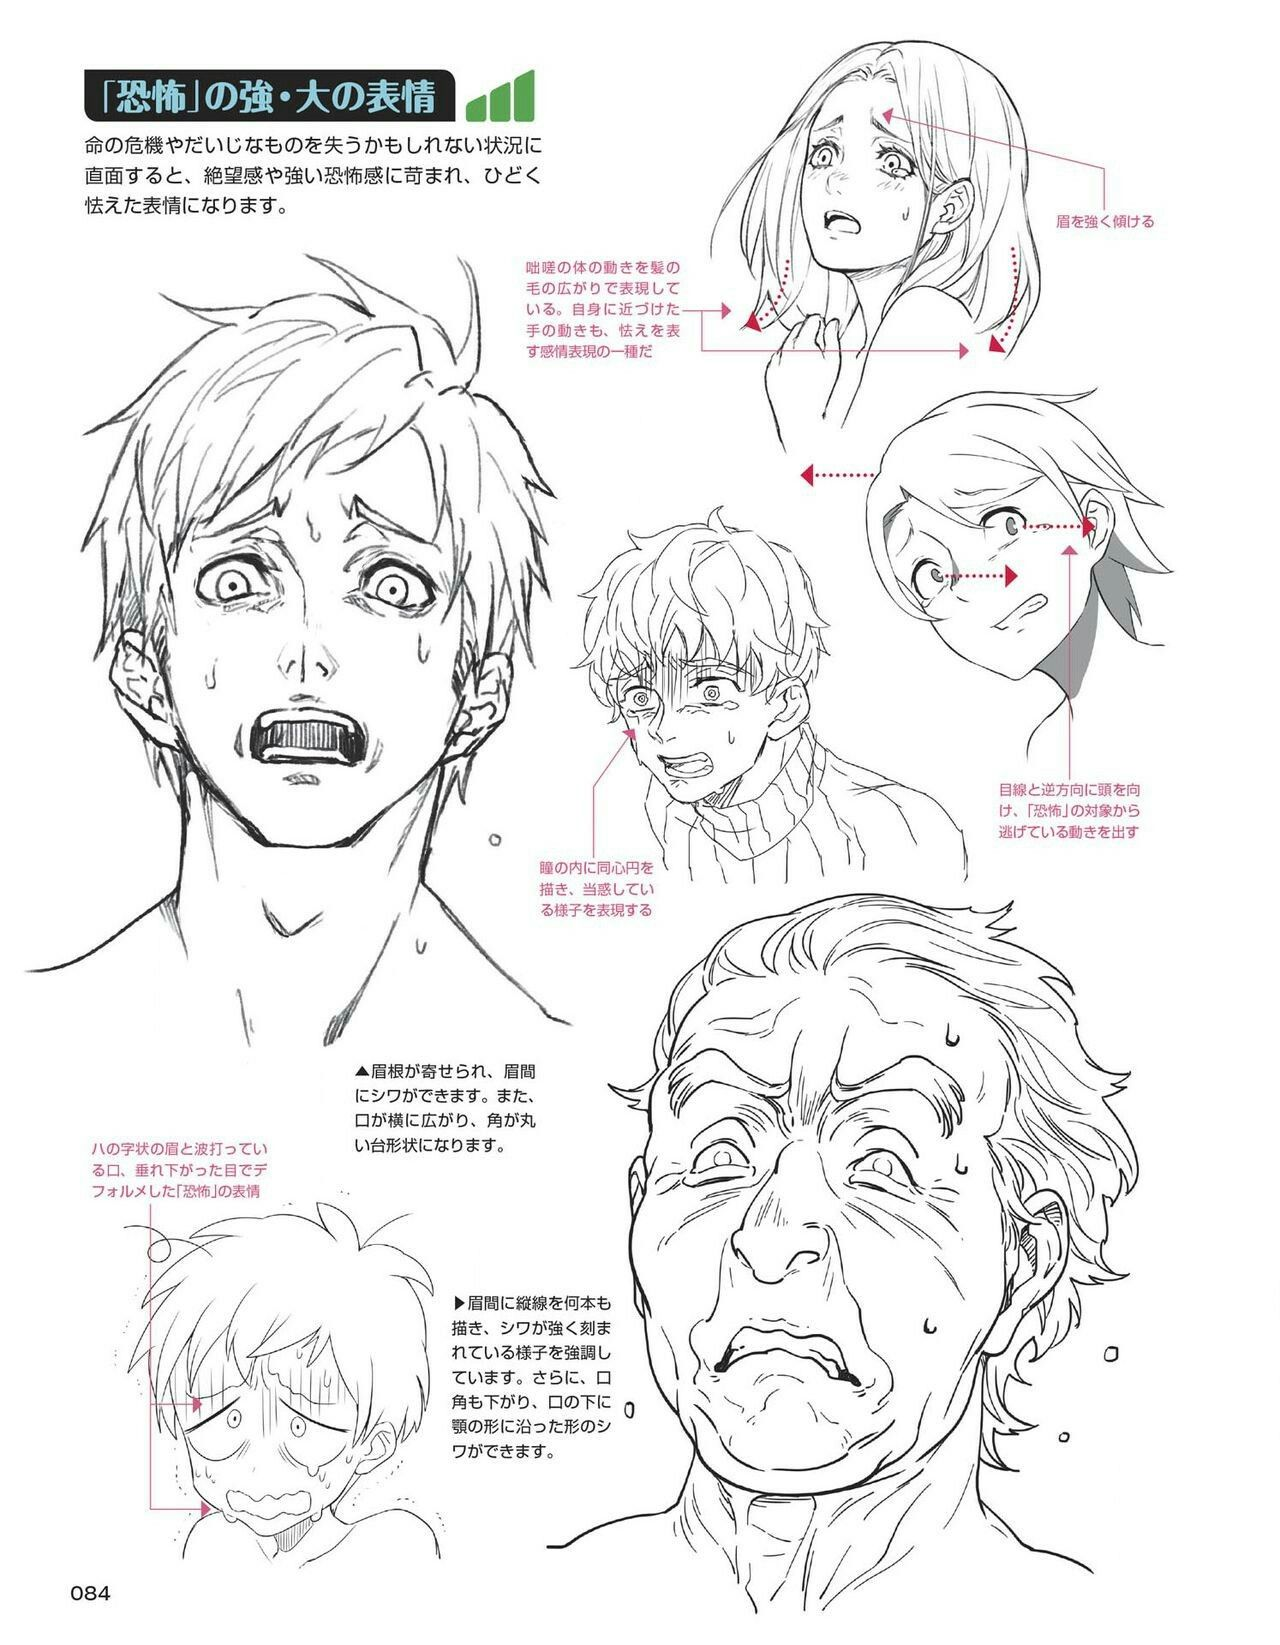 Pin by MD WK on Guide to drawing | Pinterest | Draw, Manga and Art ...